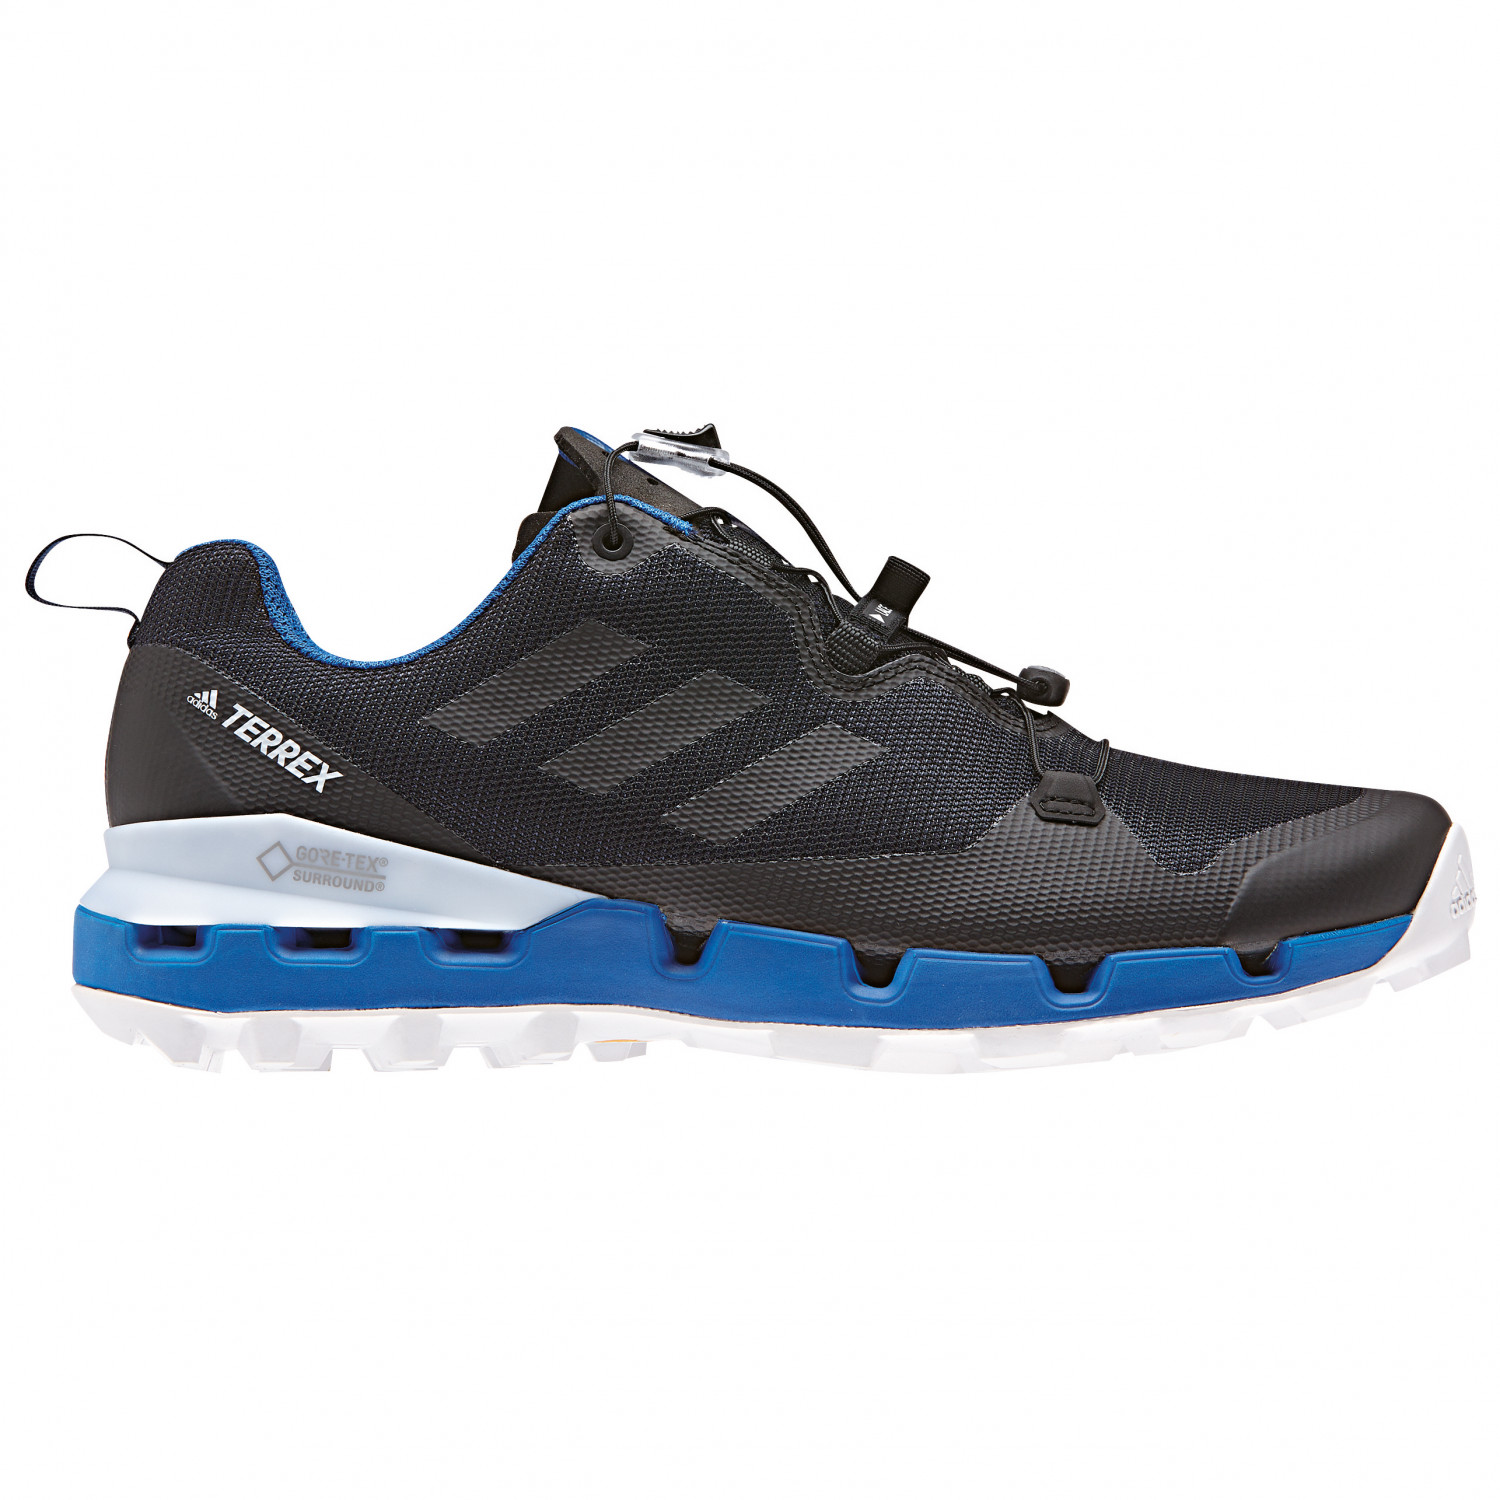 adidas terrex fast gtx surround multisport shoes men 39 s. Black Bedroom Furniture Sets. Home Design Ideas